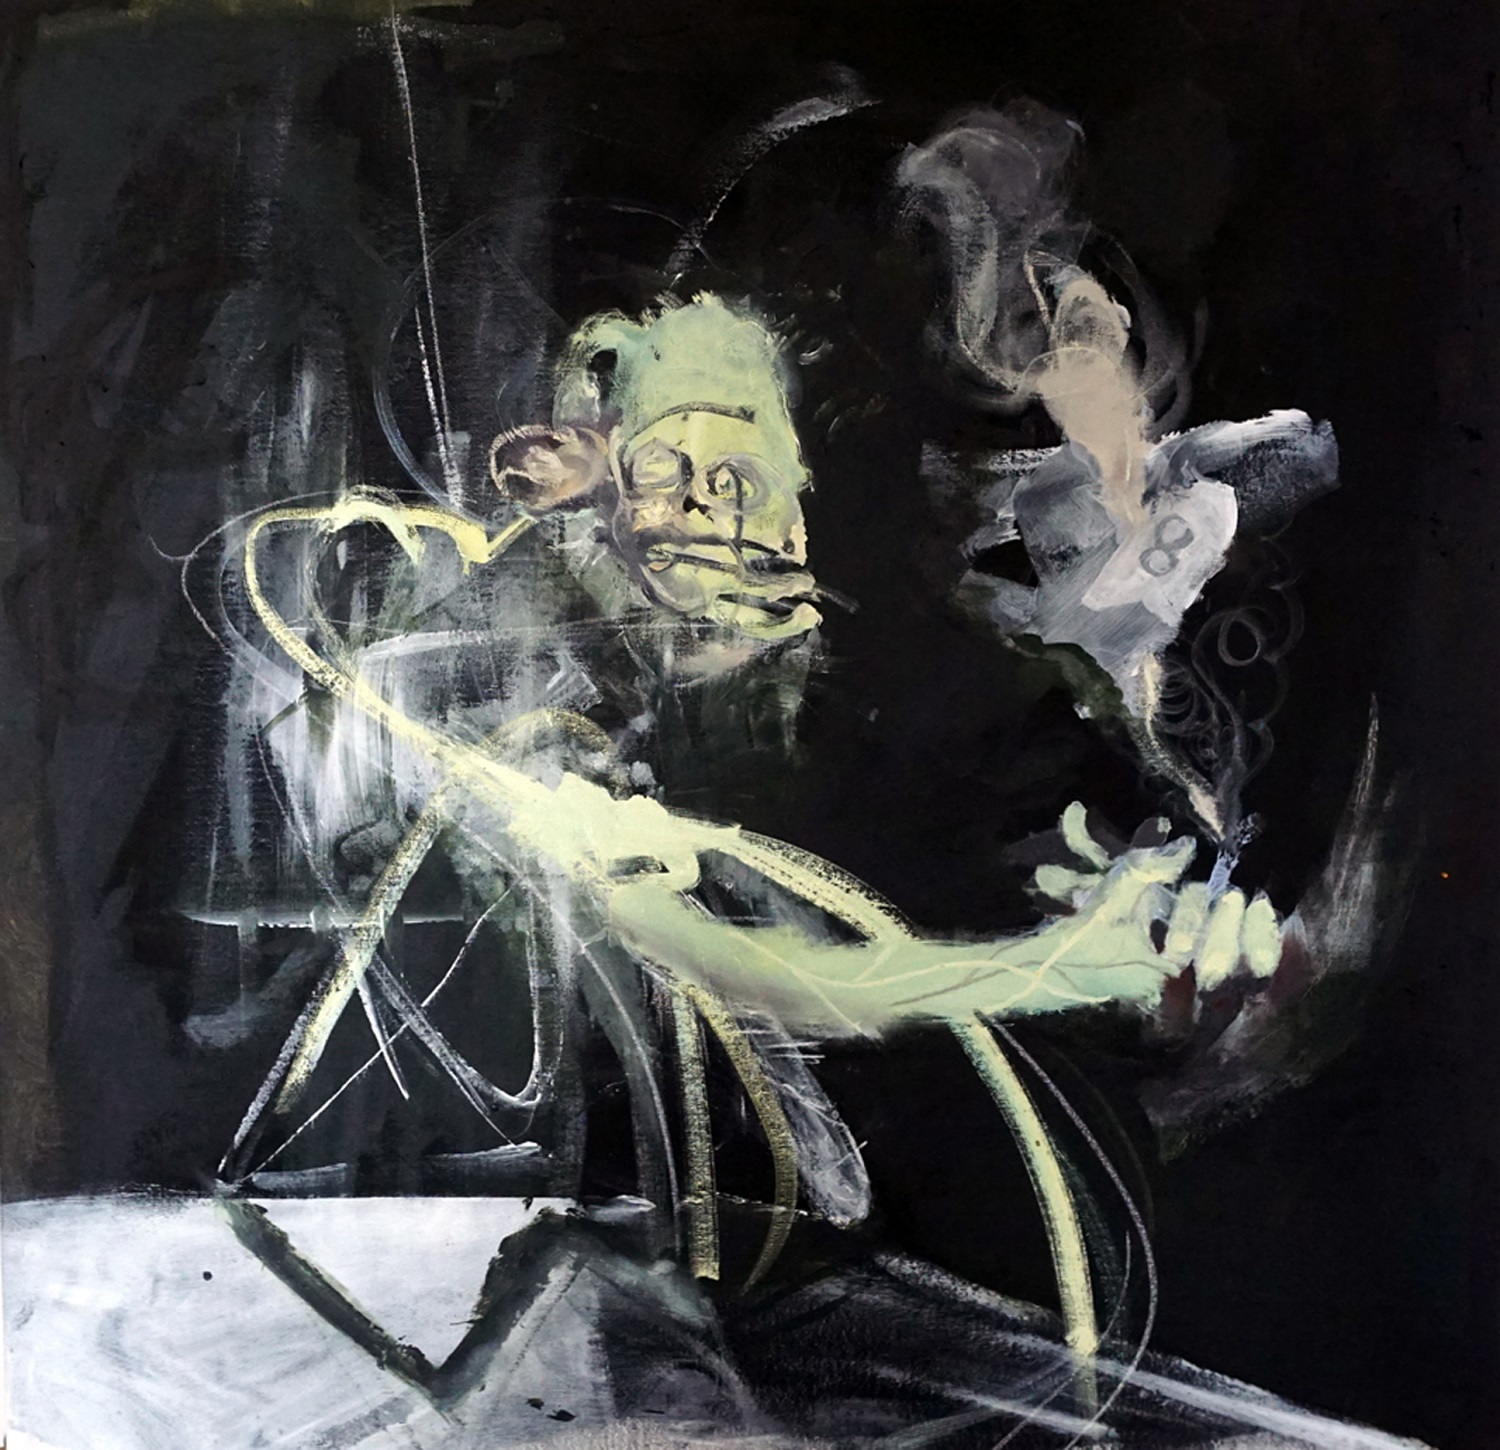 yair-perez-smoker-2015-acrylic-and-oil-on-canvas-90x89-cm-copy